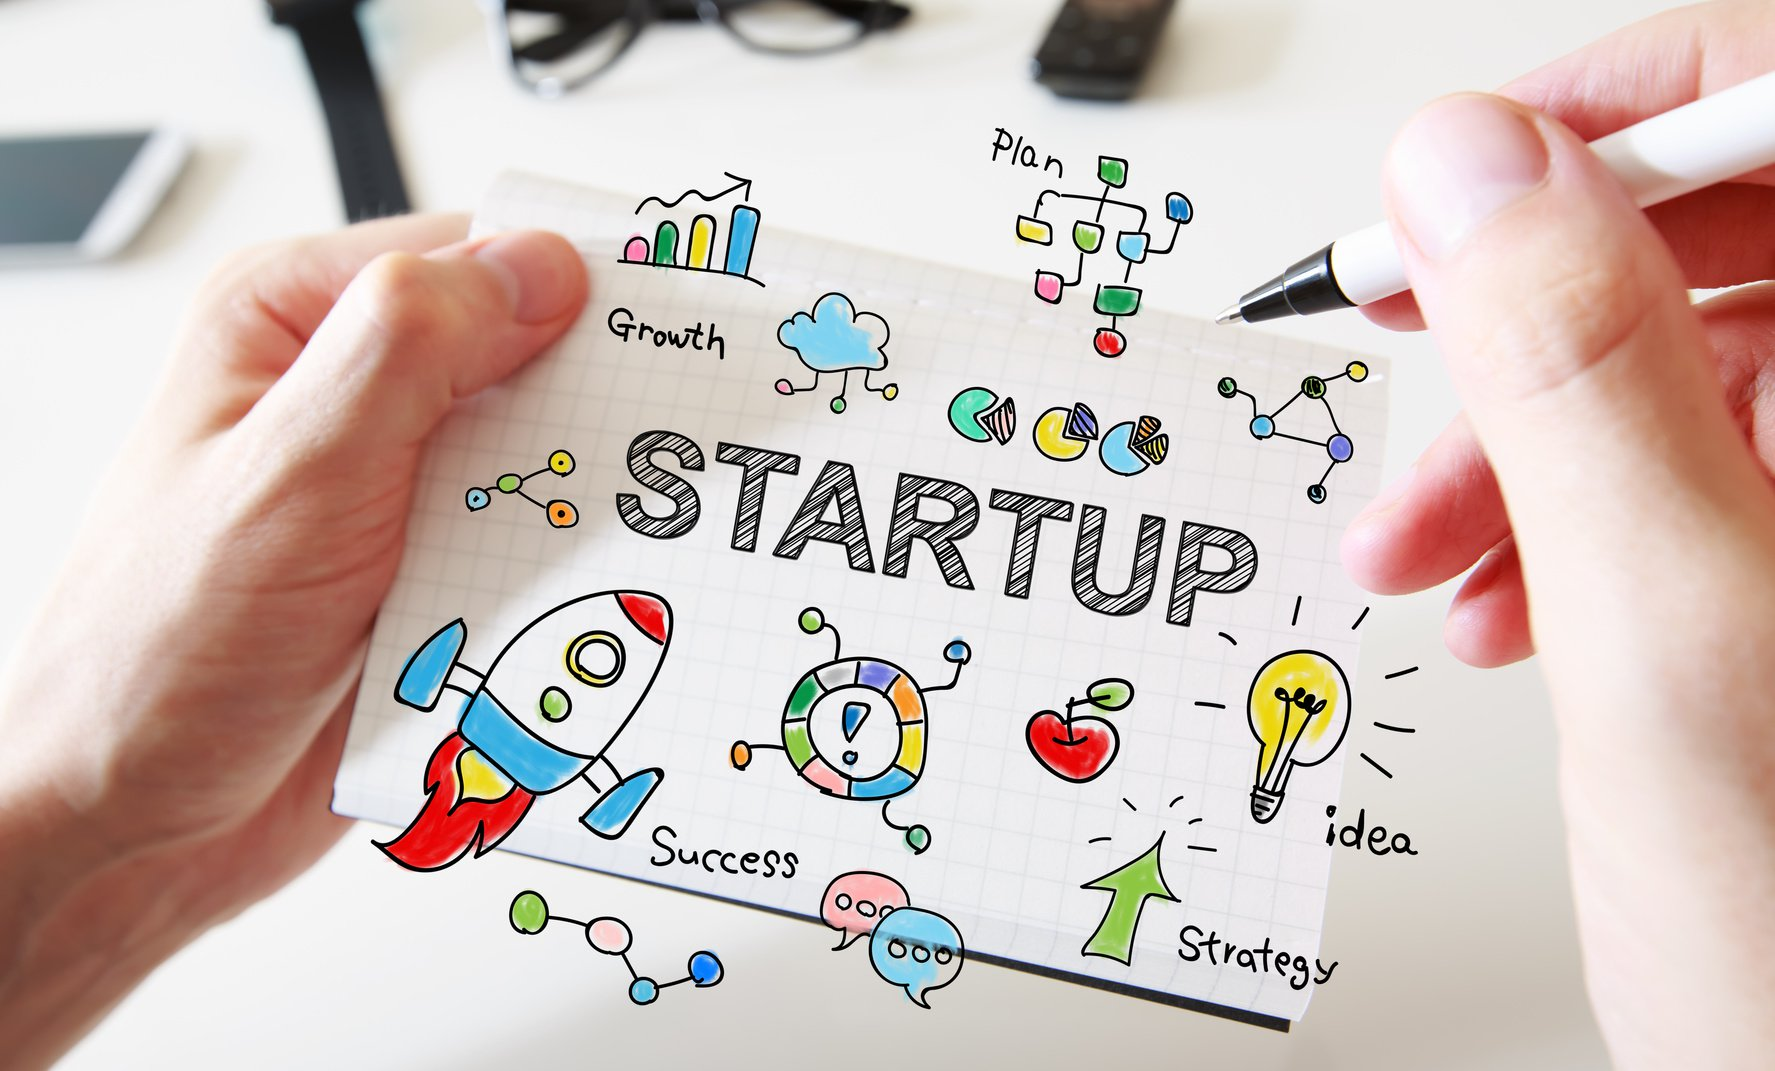 5 Effective Strategies To Future Proof Your Start-Up